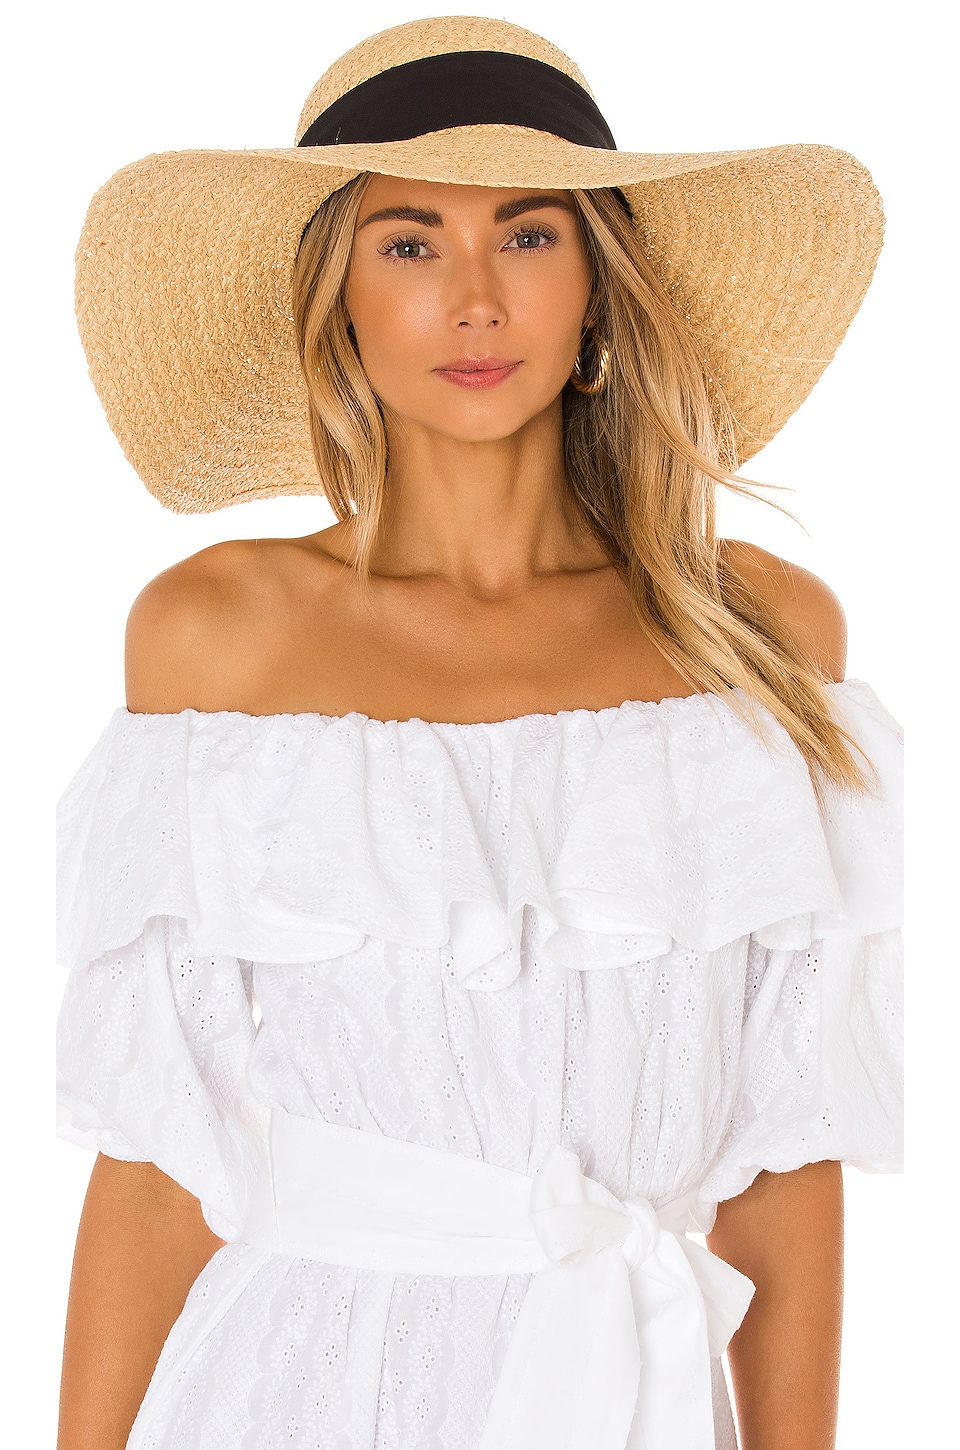 Hat Attack Avalon Sunhat in Natural & Black